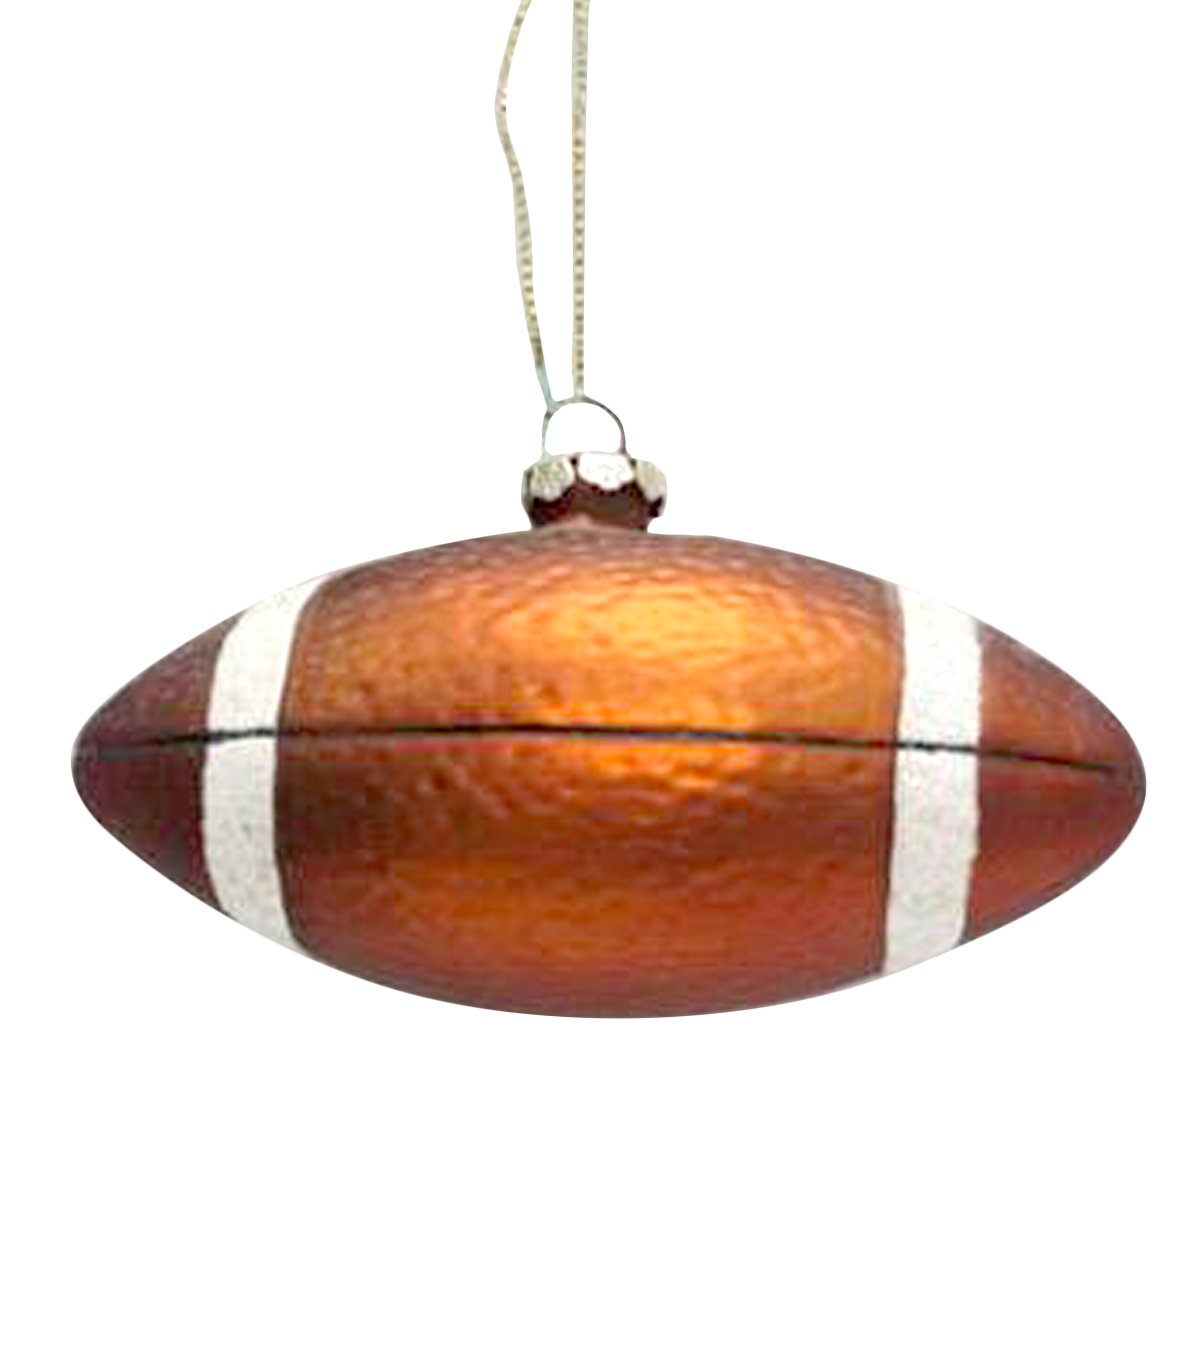 Maker's Holiday Football Ornament